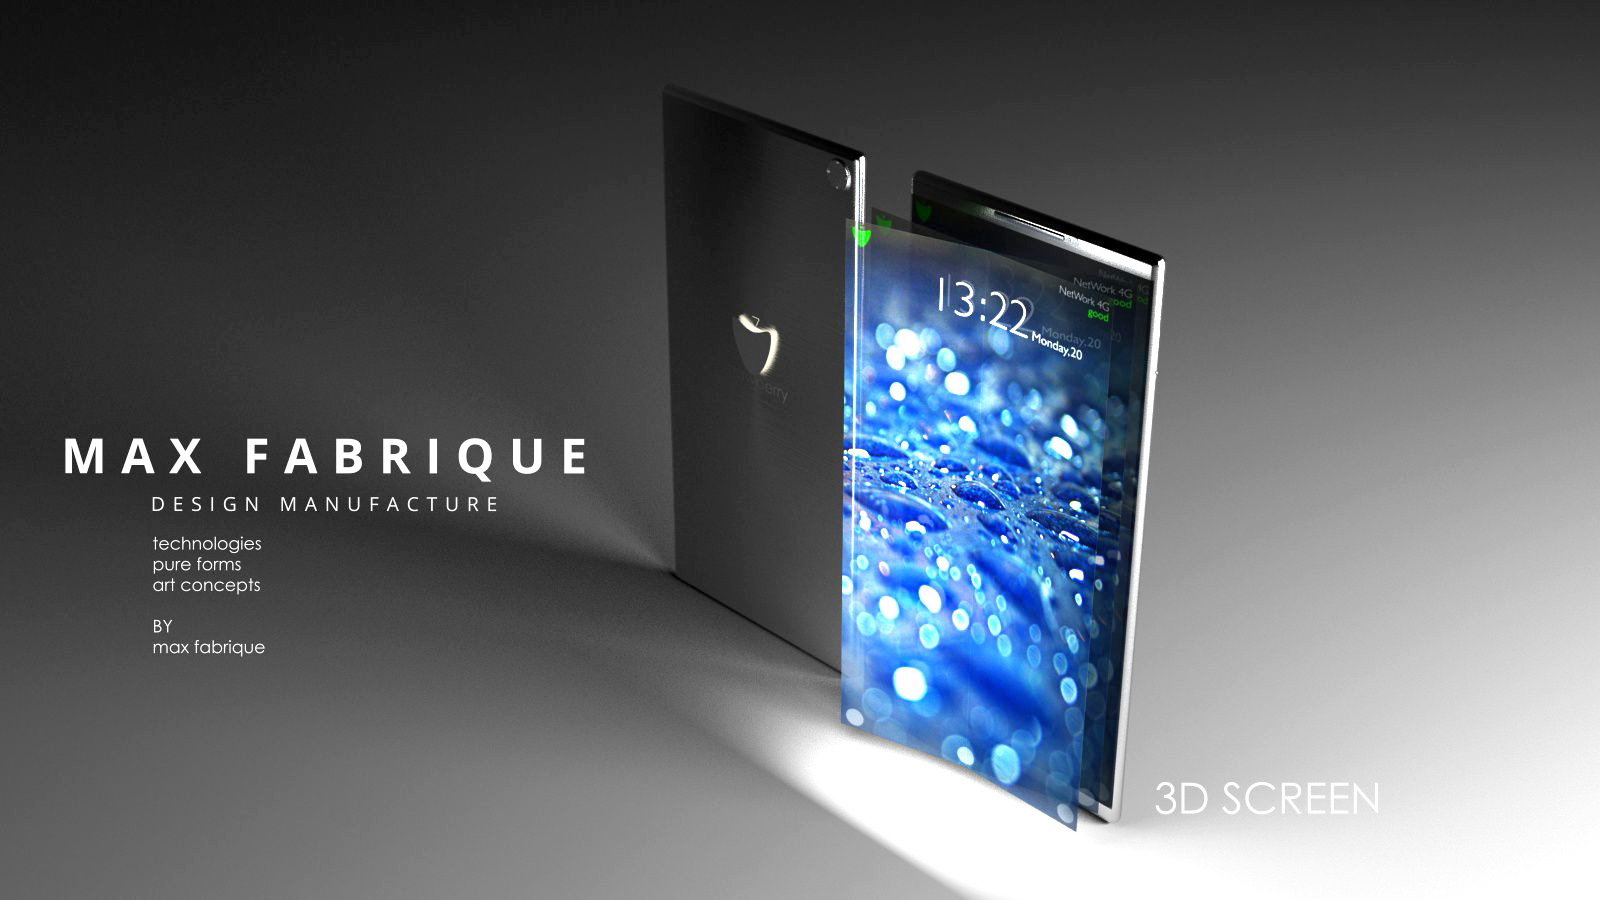 Smartphone with 3D screen